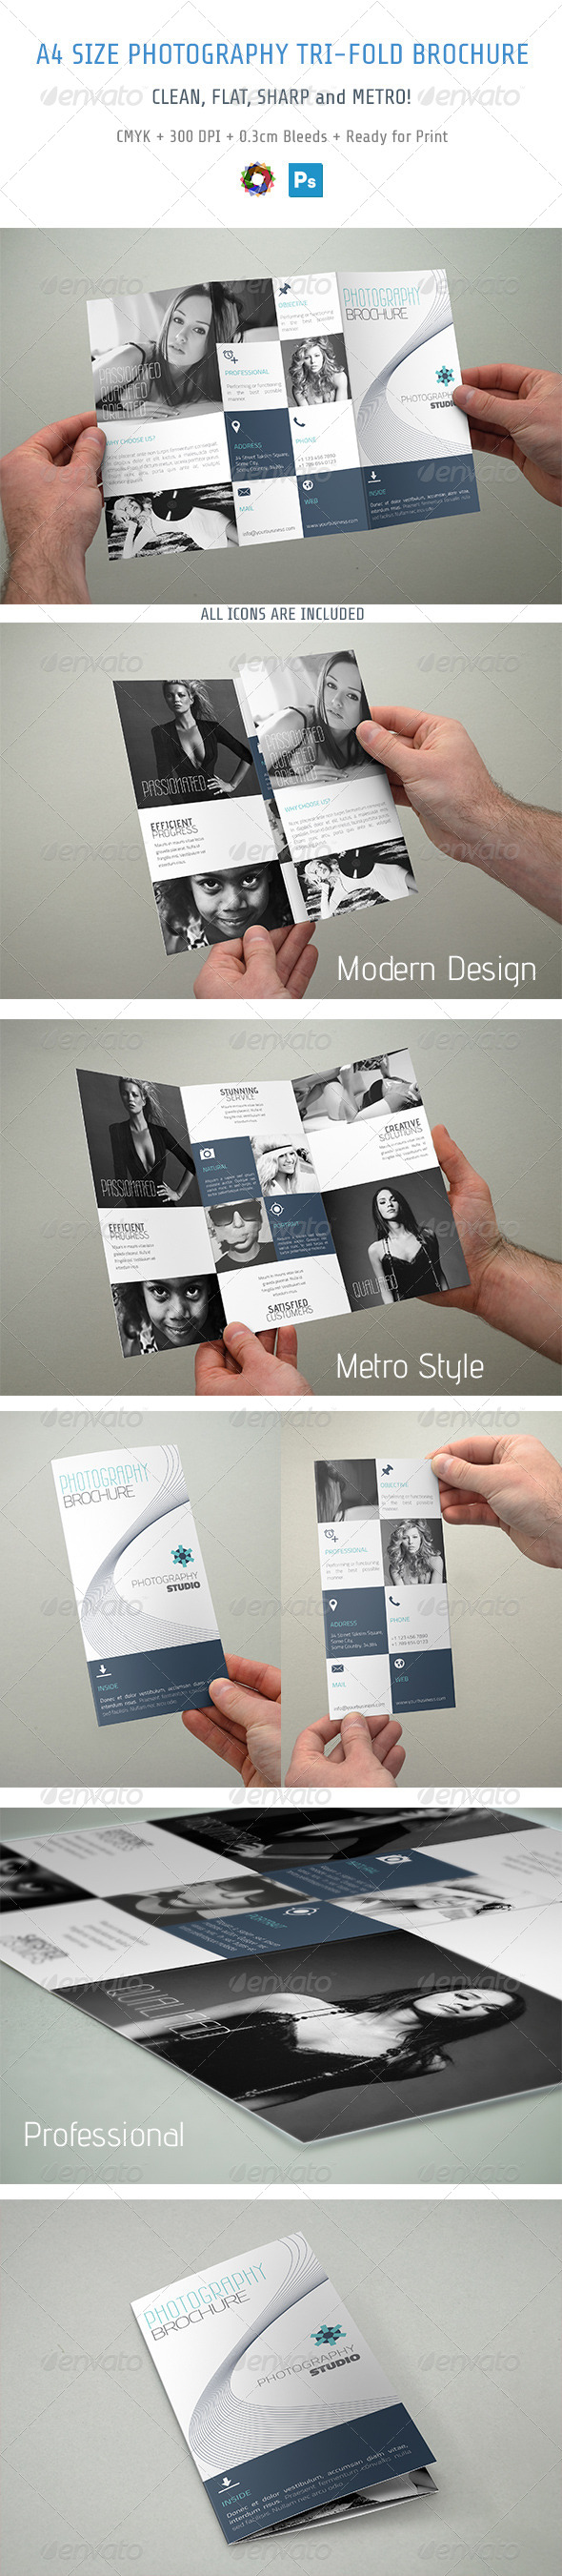 GraphicRiver Photography Trifold Brochure 5591107